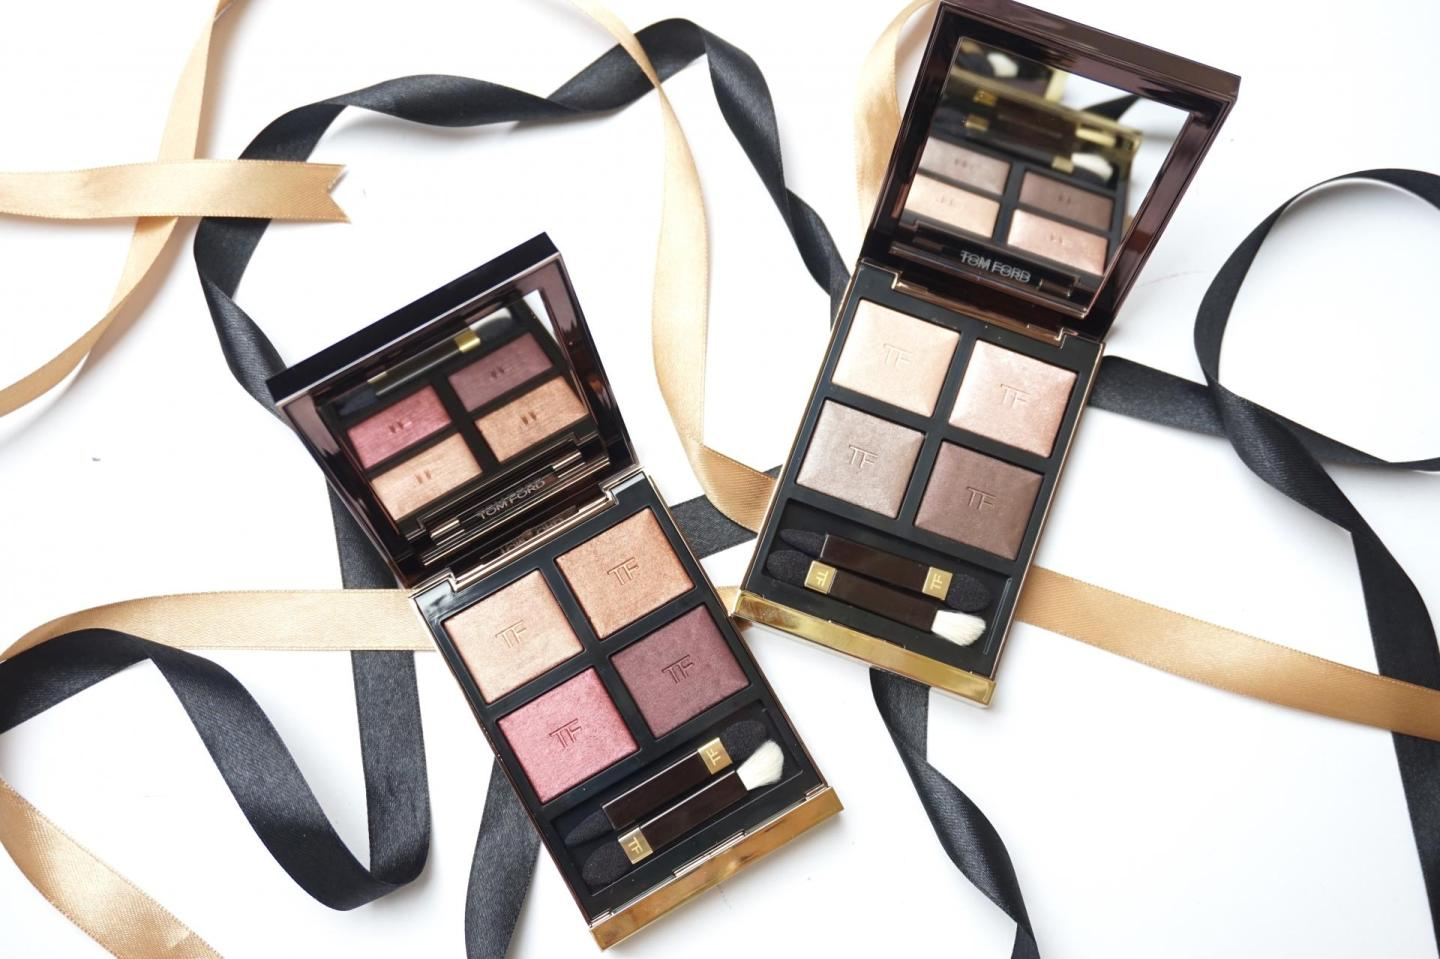 Tom Ford Eye Color Quad in Honeymoon & Nude Dip